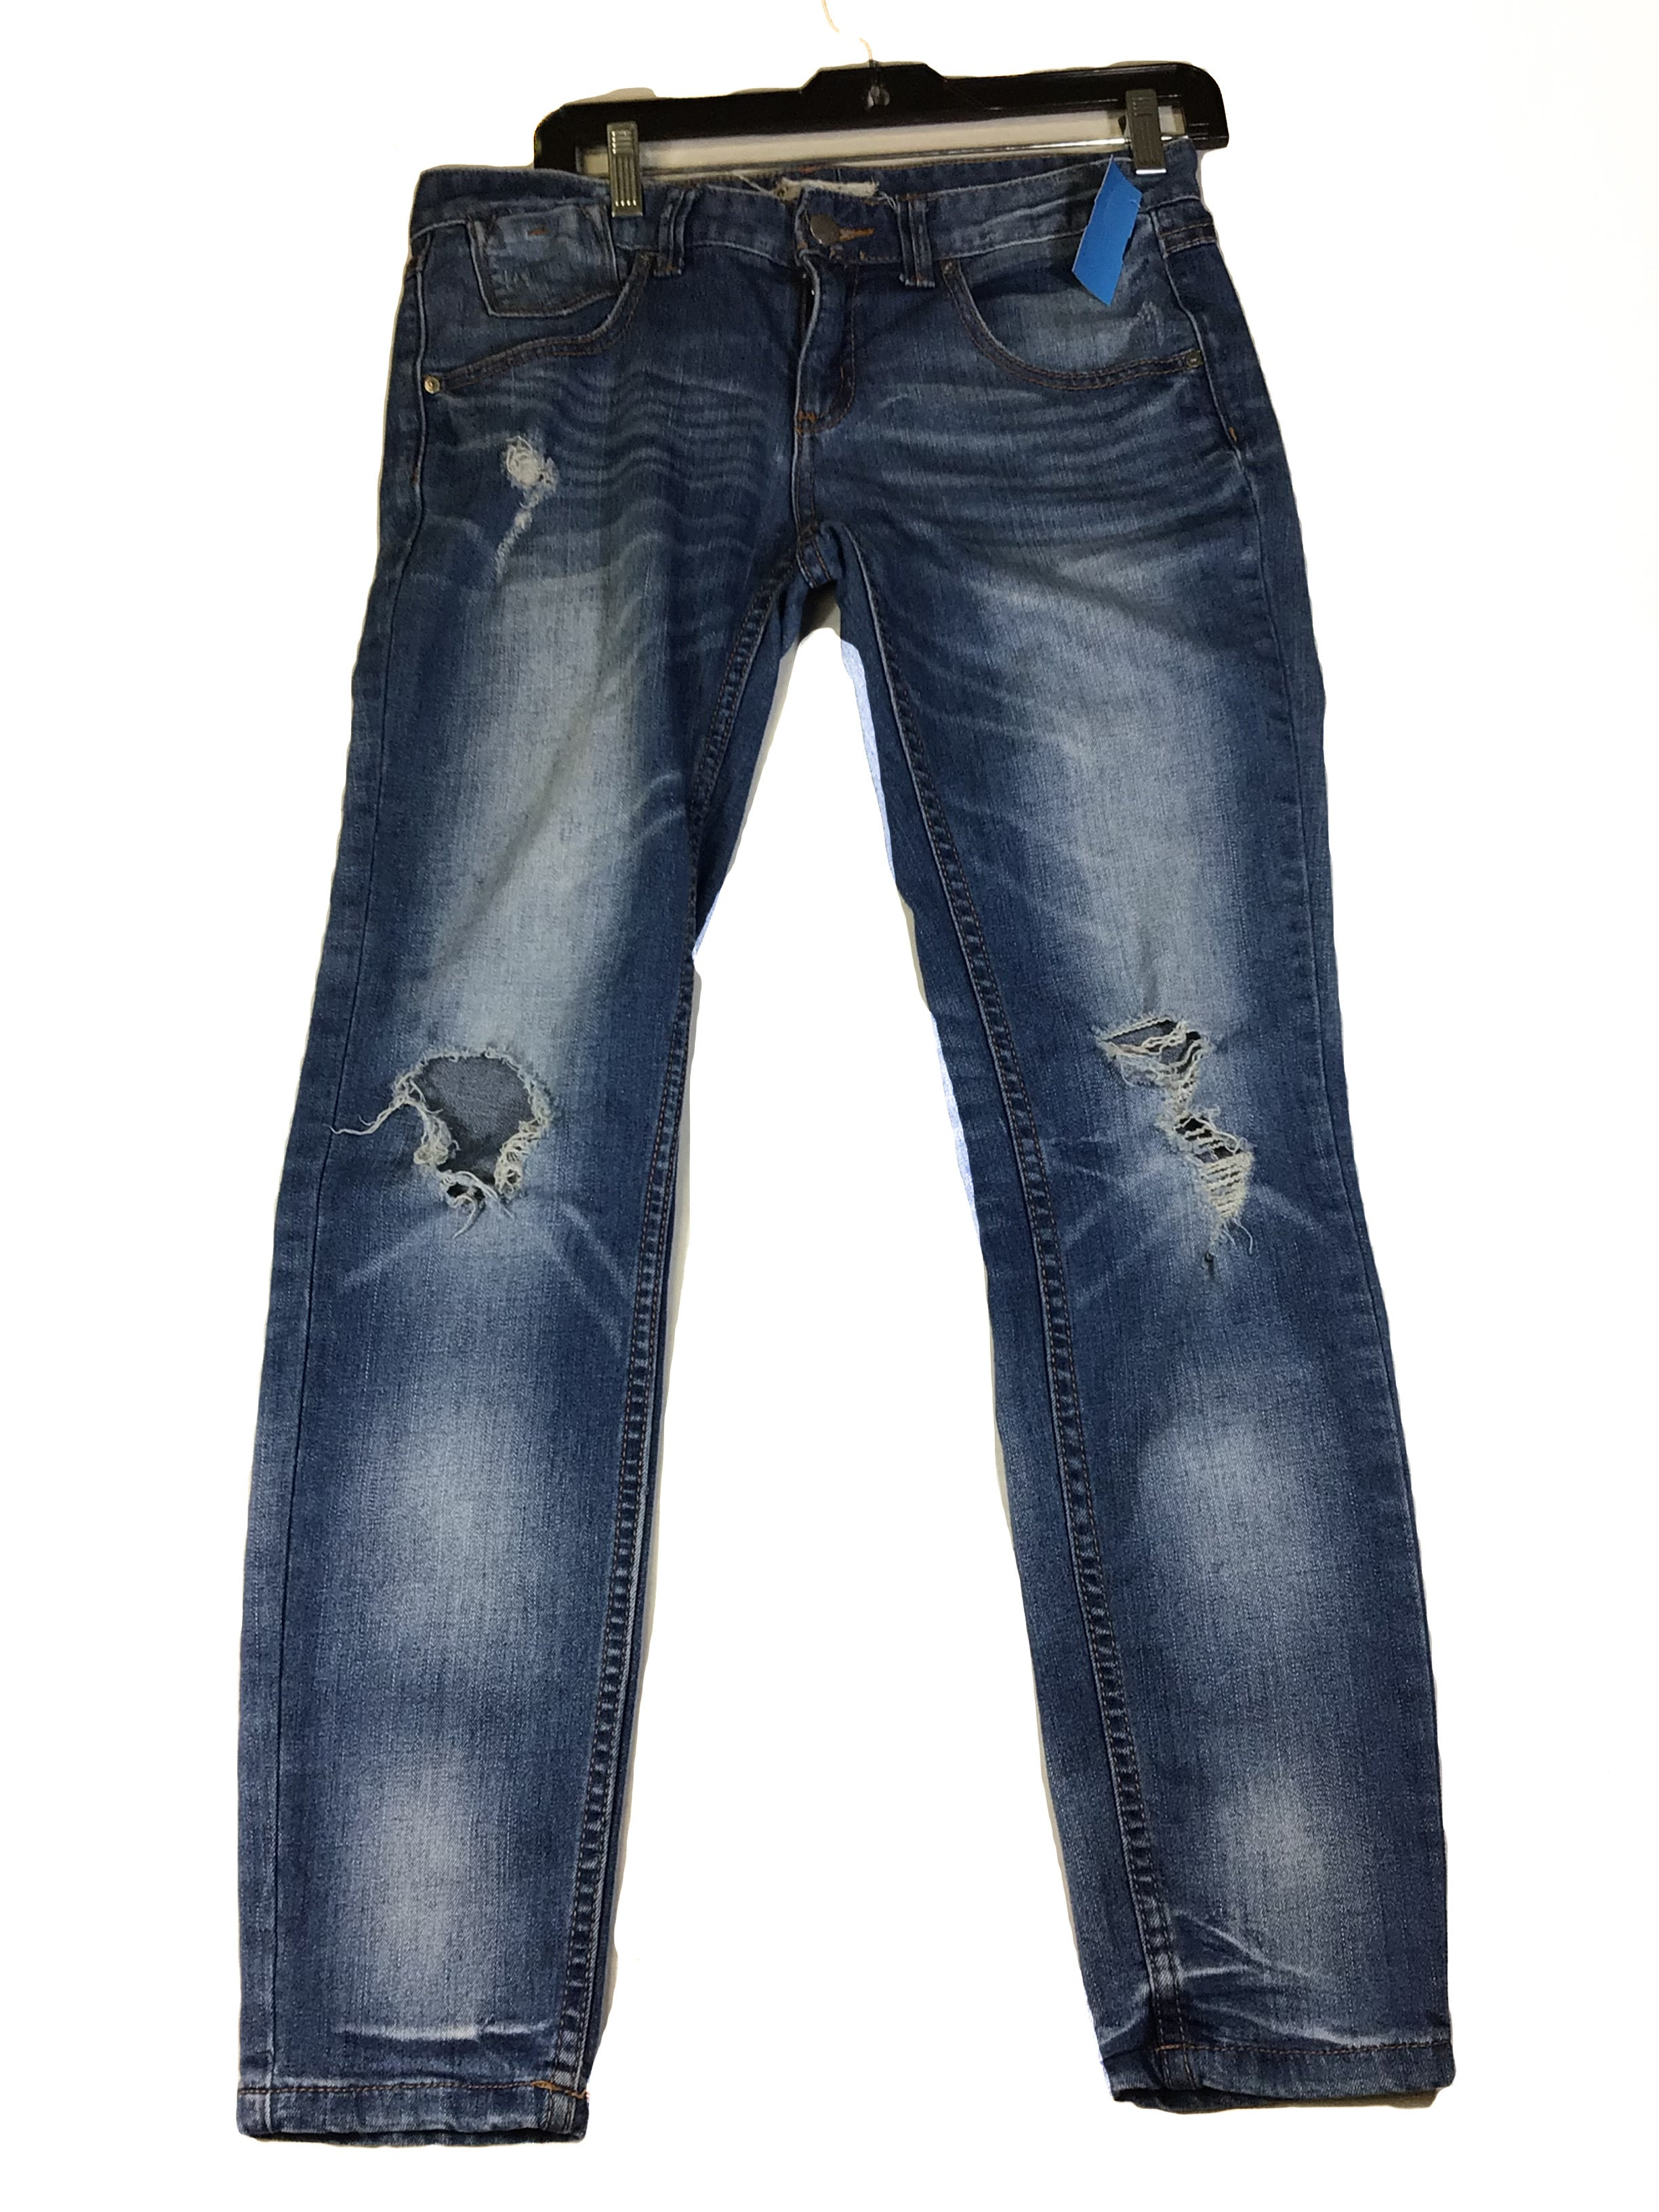 Primary Photo - BRAND: FREE PEOPLE <BR>STYLE: JEANS <BR>COLOR: DENIM <BR>SIZE: 4 <BR>SKU: 213-213143-7838